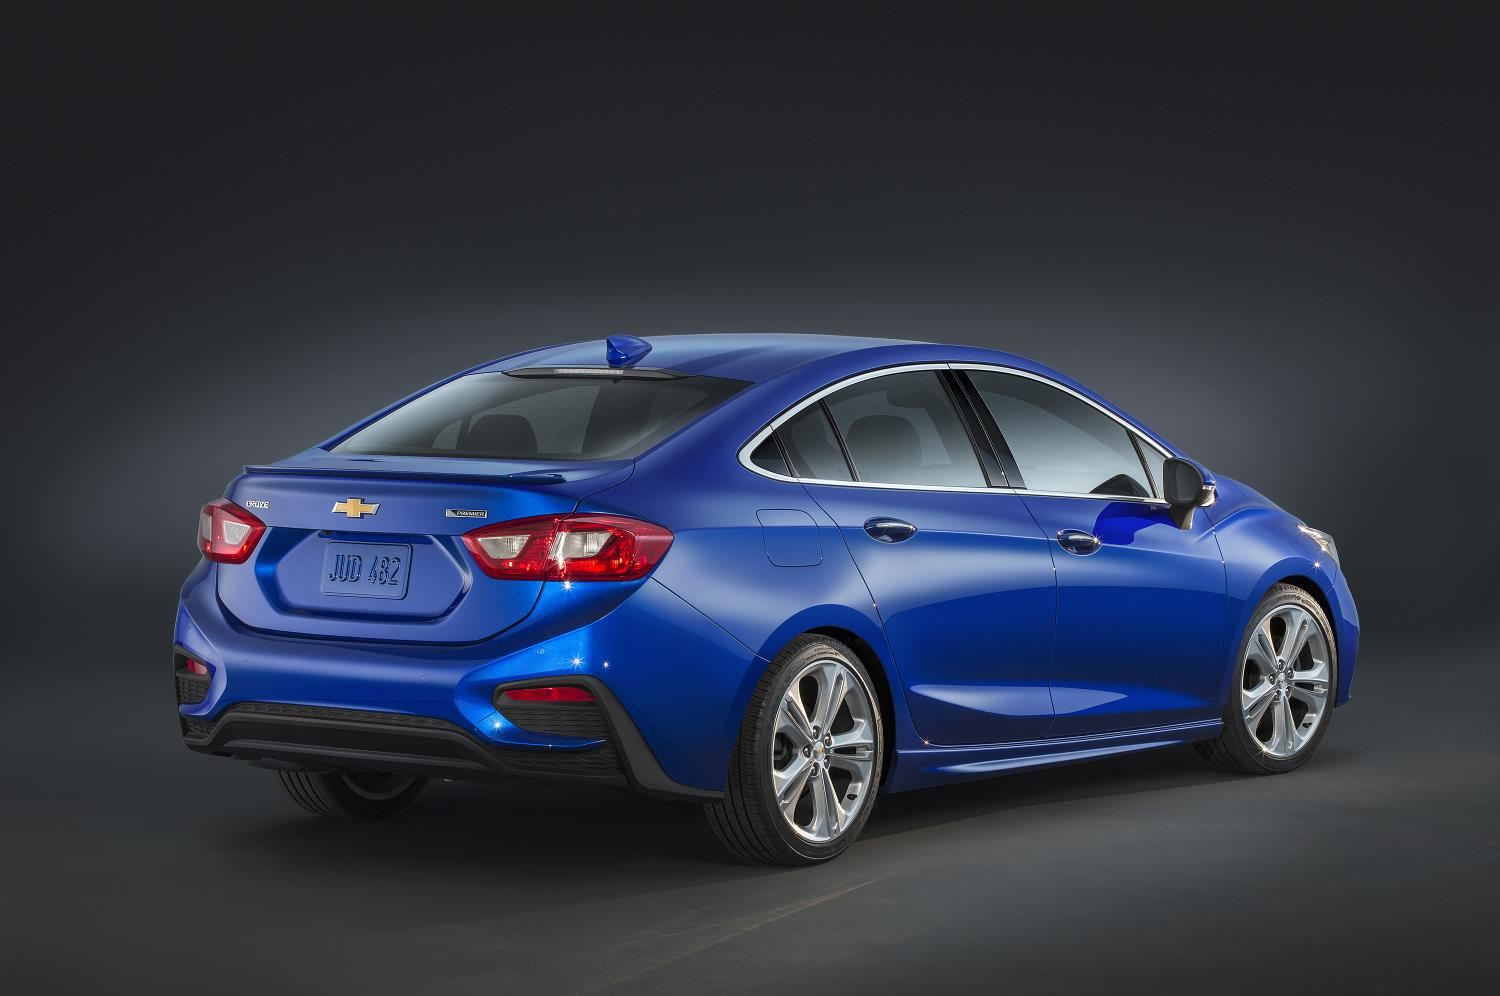 2017 chevrolet cruze diesel sedan returns 52 mpg highway priced from 24 670 autoevolution. Black Bedroom Furniture Sets. Home Design Ideas